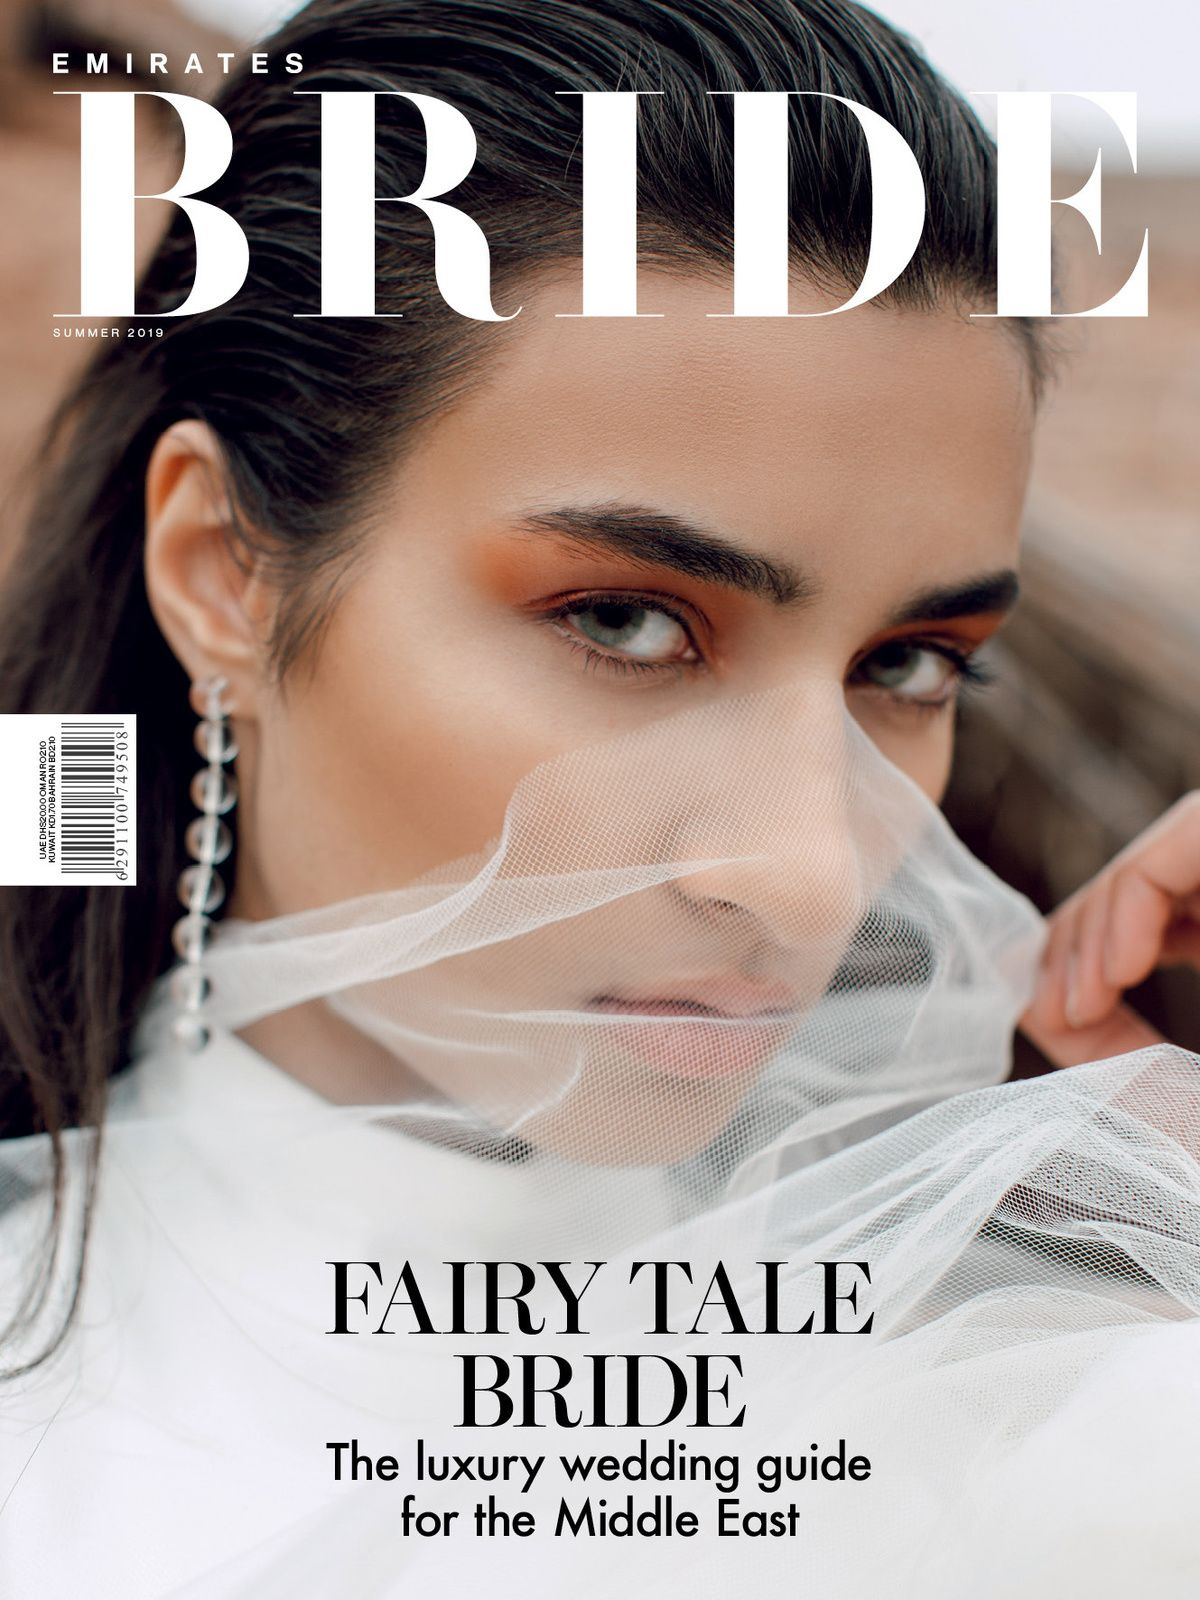 The-saums-emirates-woman-bride-cover-marrakech.jpg